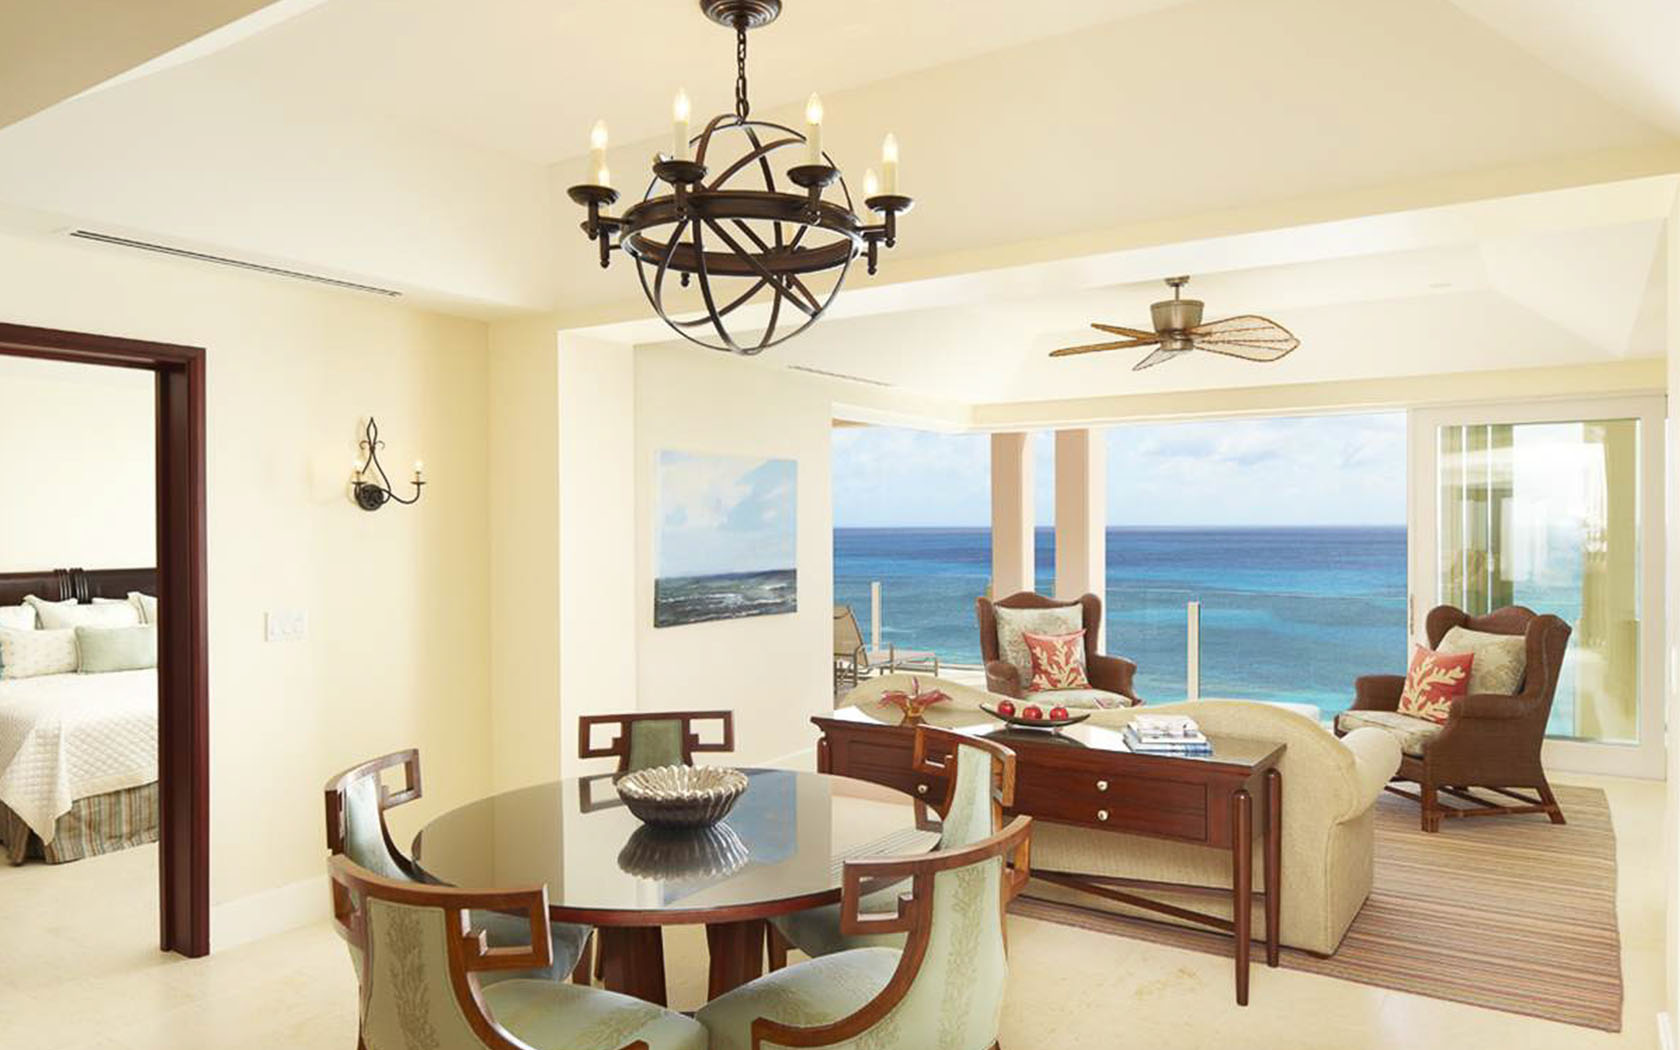 Bermuda Beach Resort - Accommodations | The Reefs Resort and Club